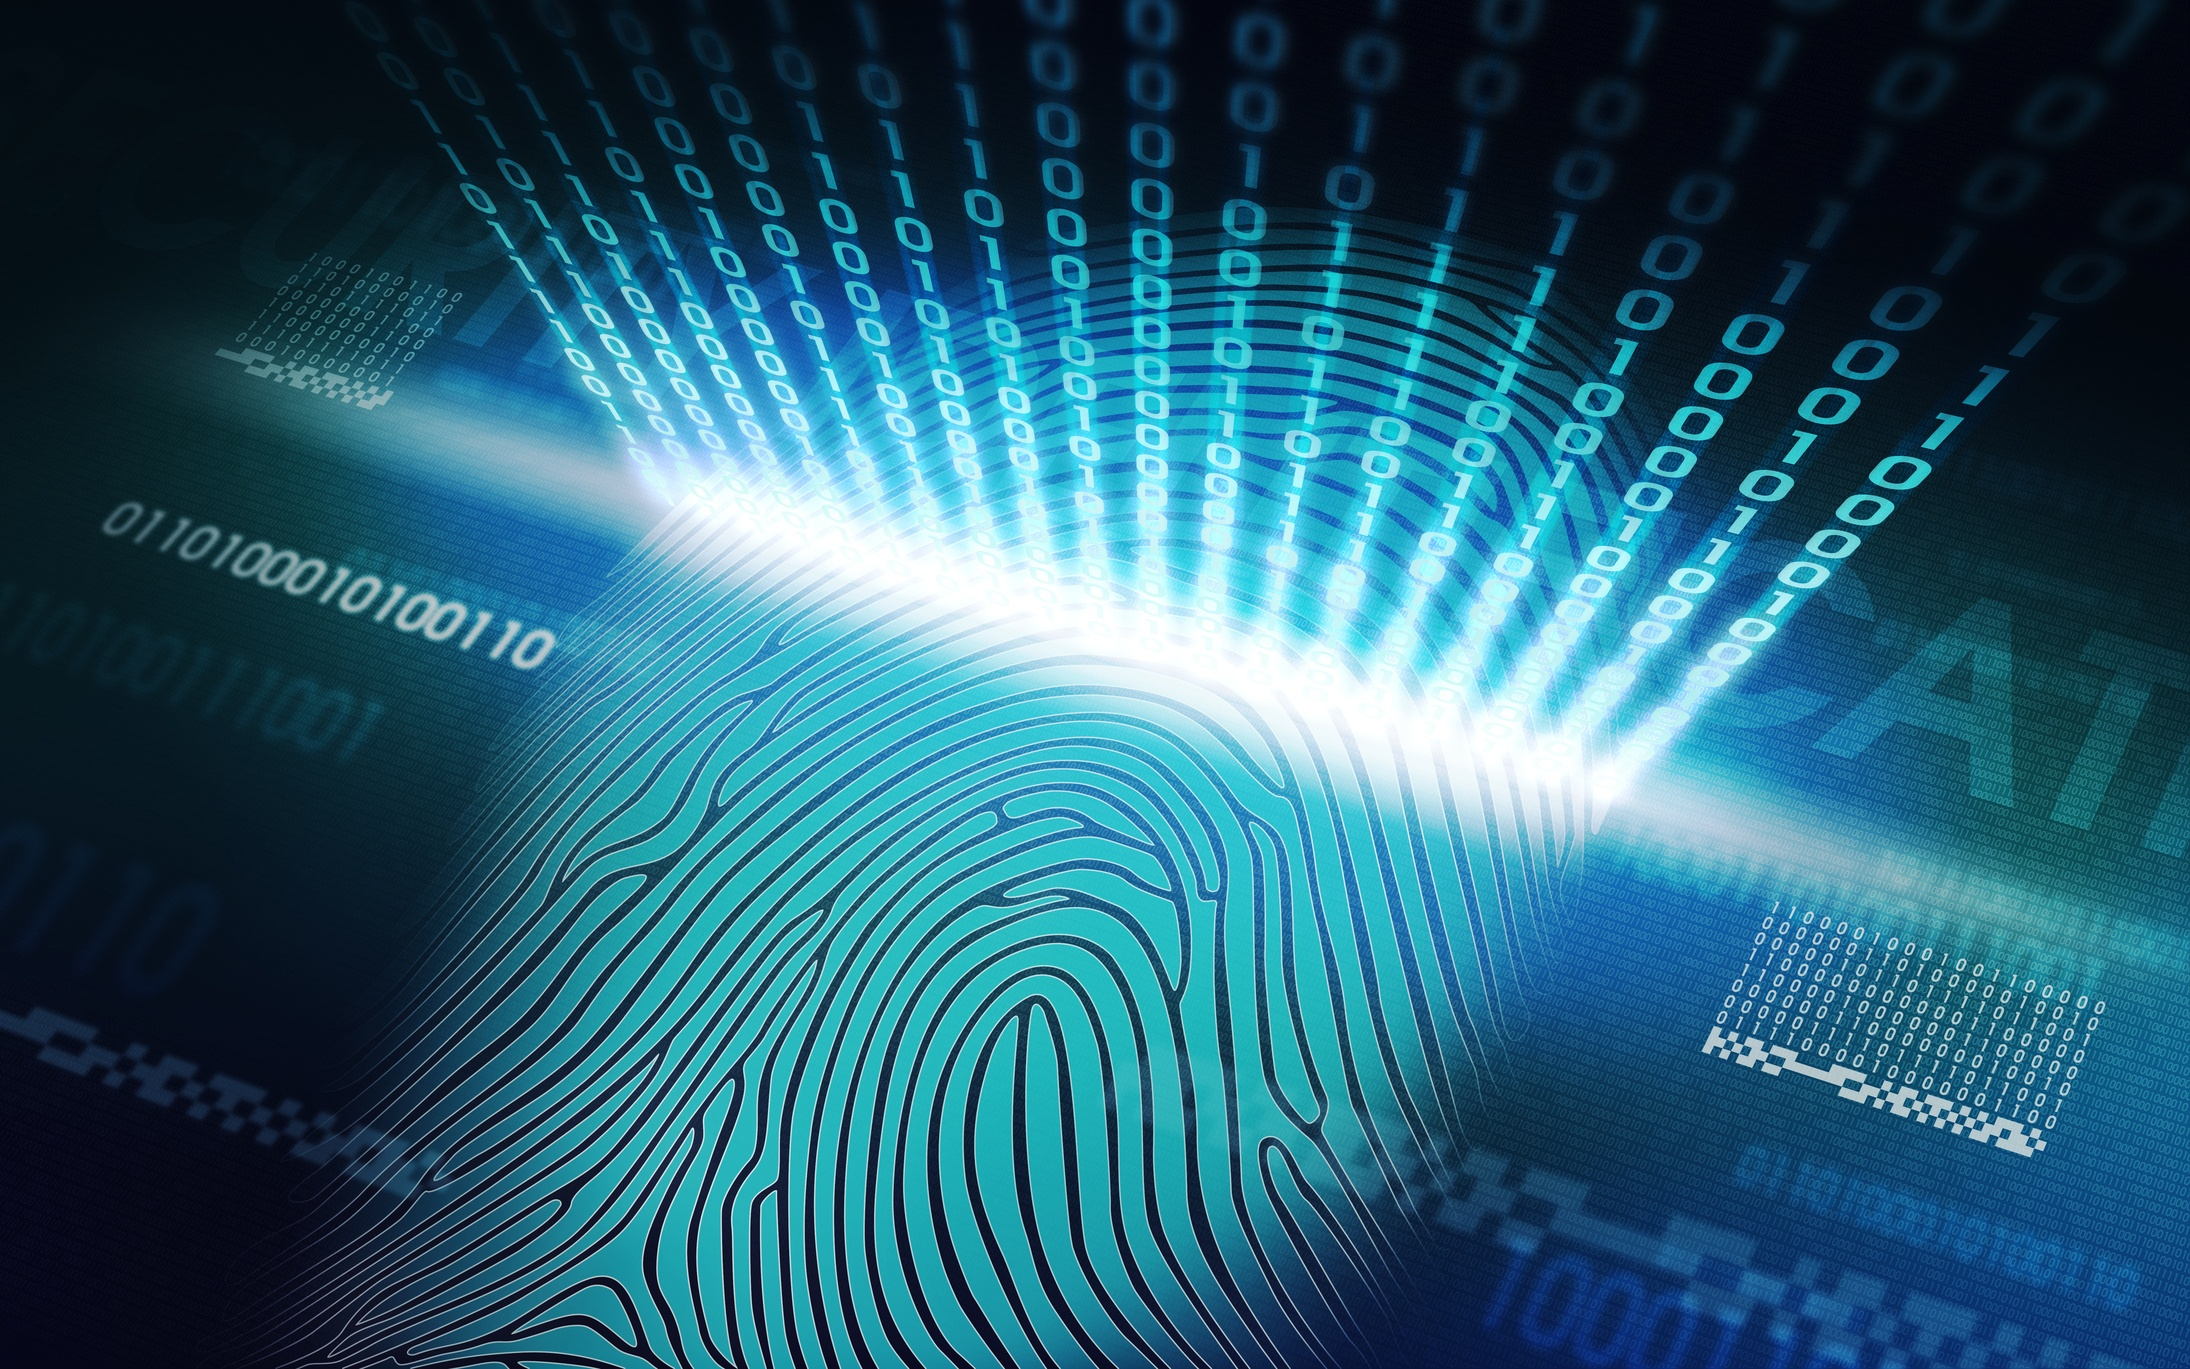 types-of-authentication-methods-what-is-risk-based-authentication.jpg